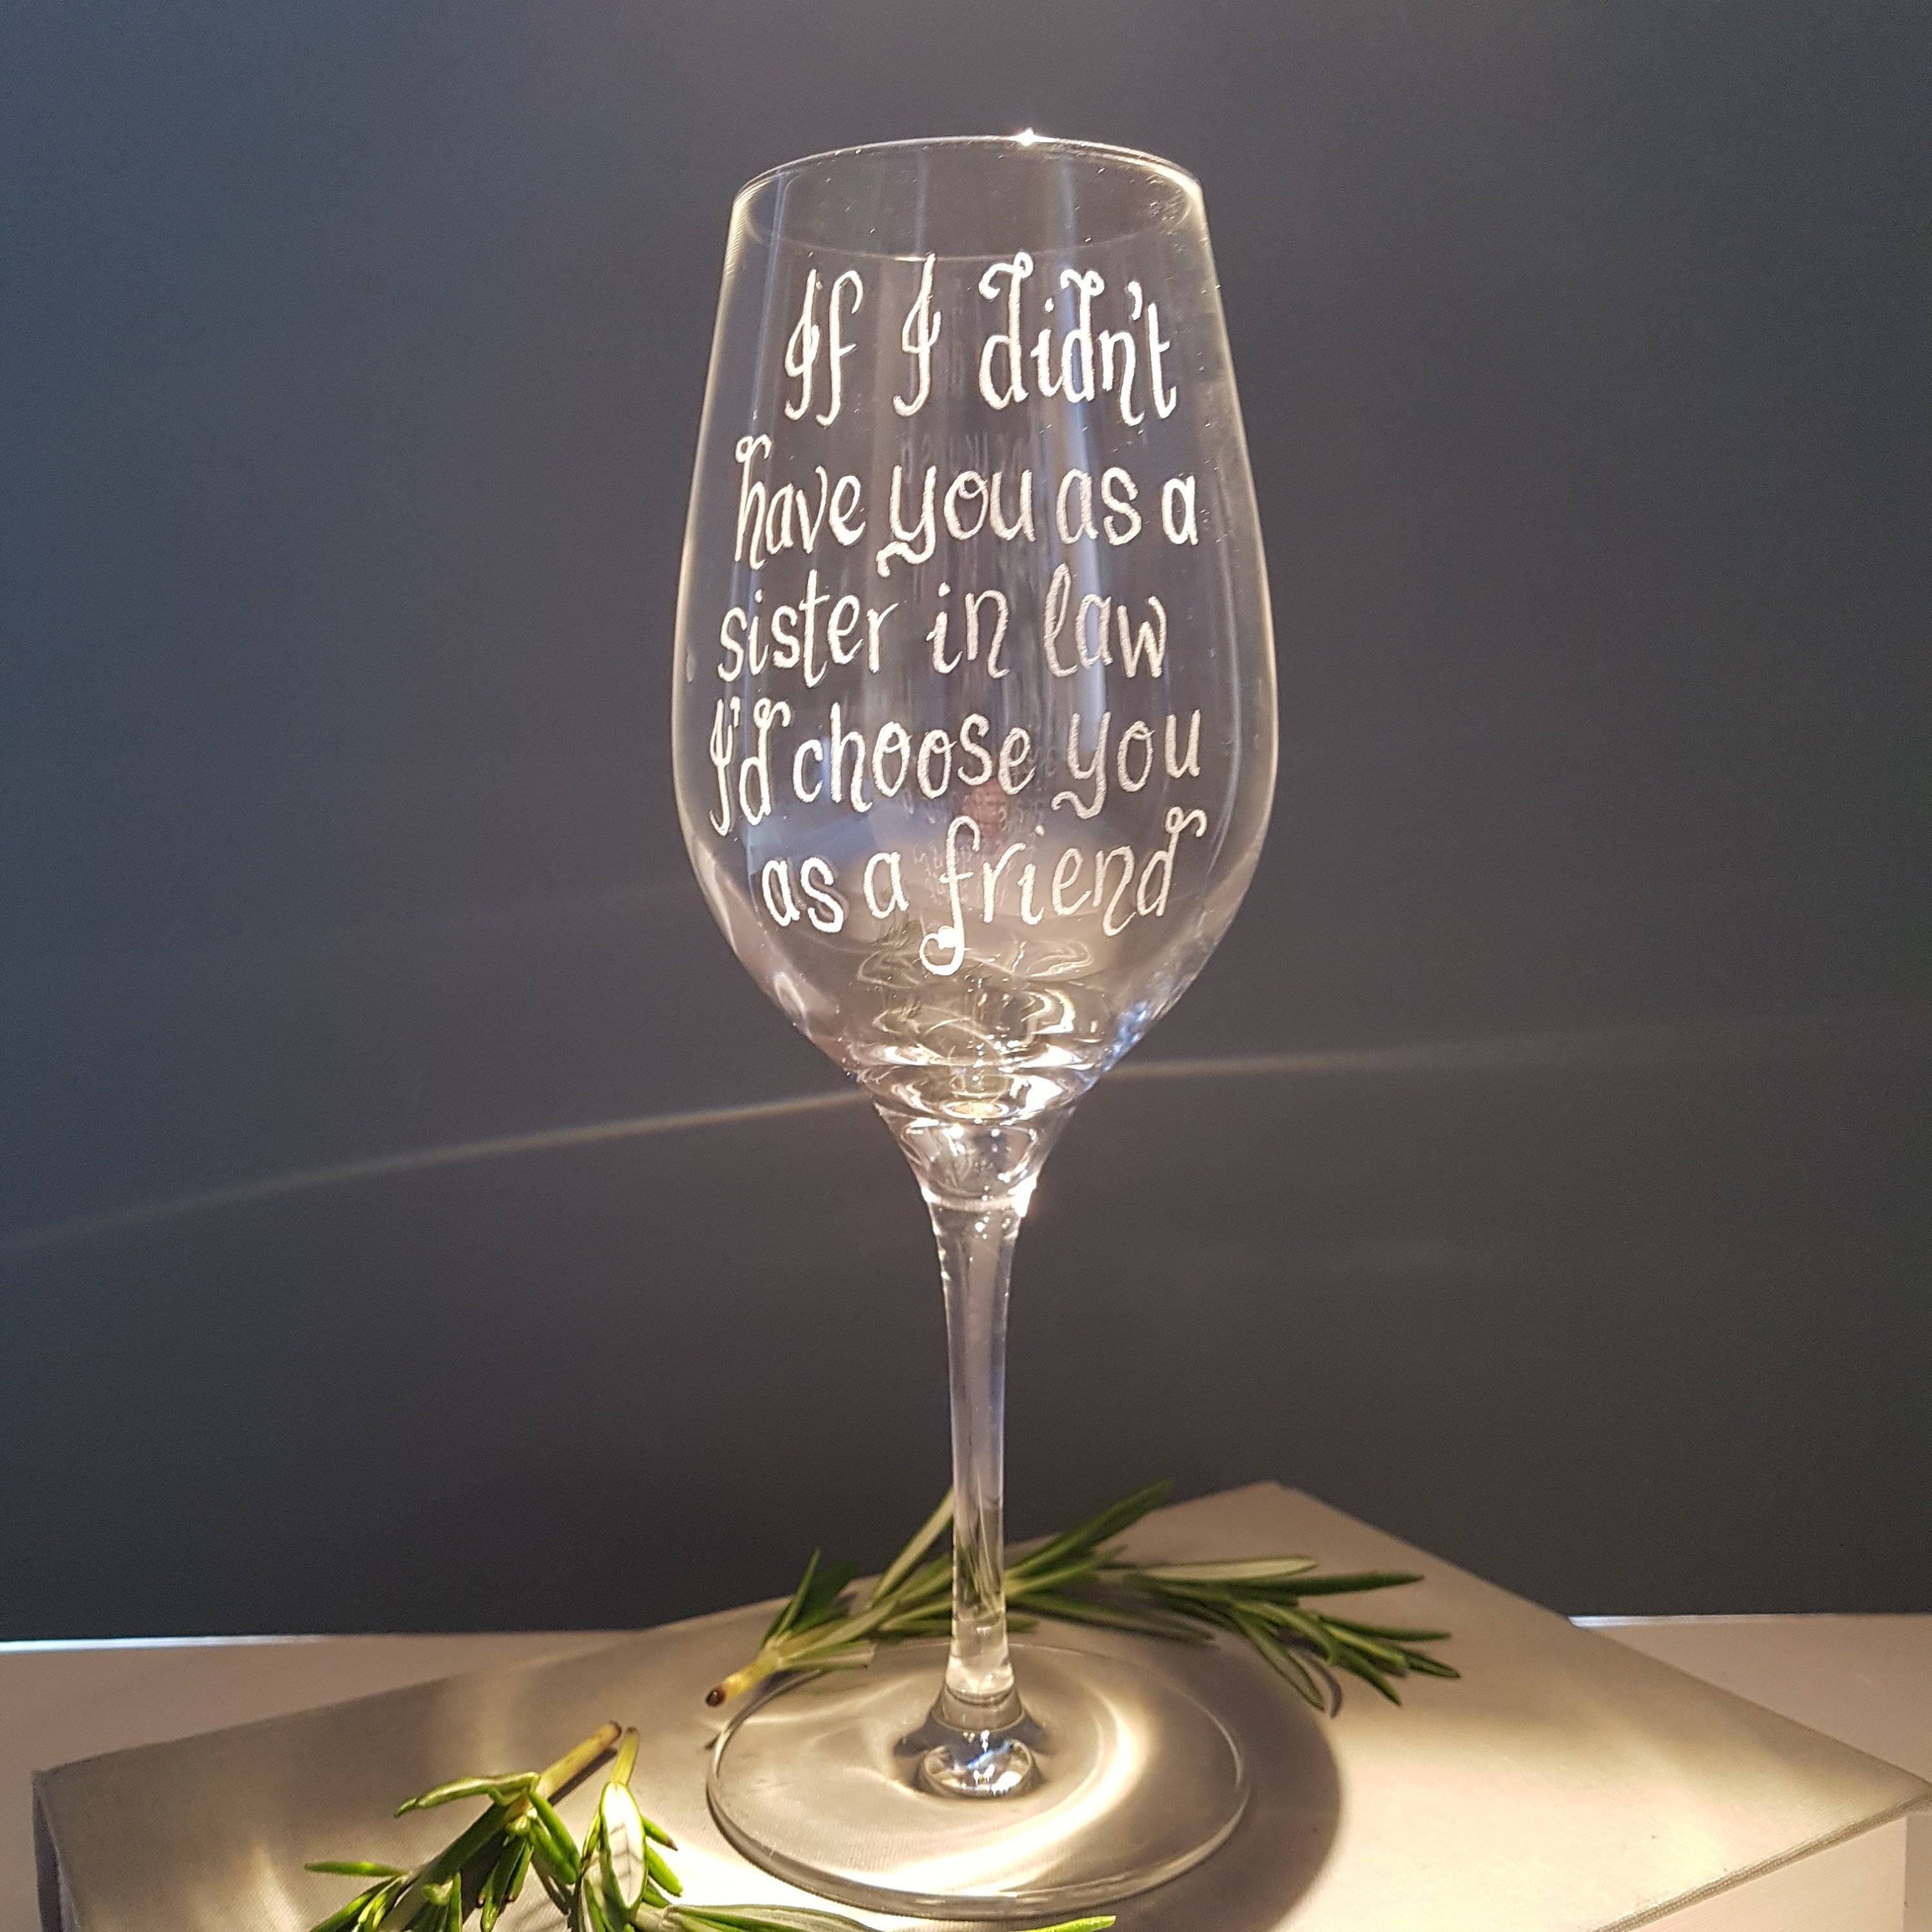 Personalised Wine Glass Custom Gift Idea Birthday Wedding Sister In Law Father Of The Bride BFF